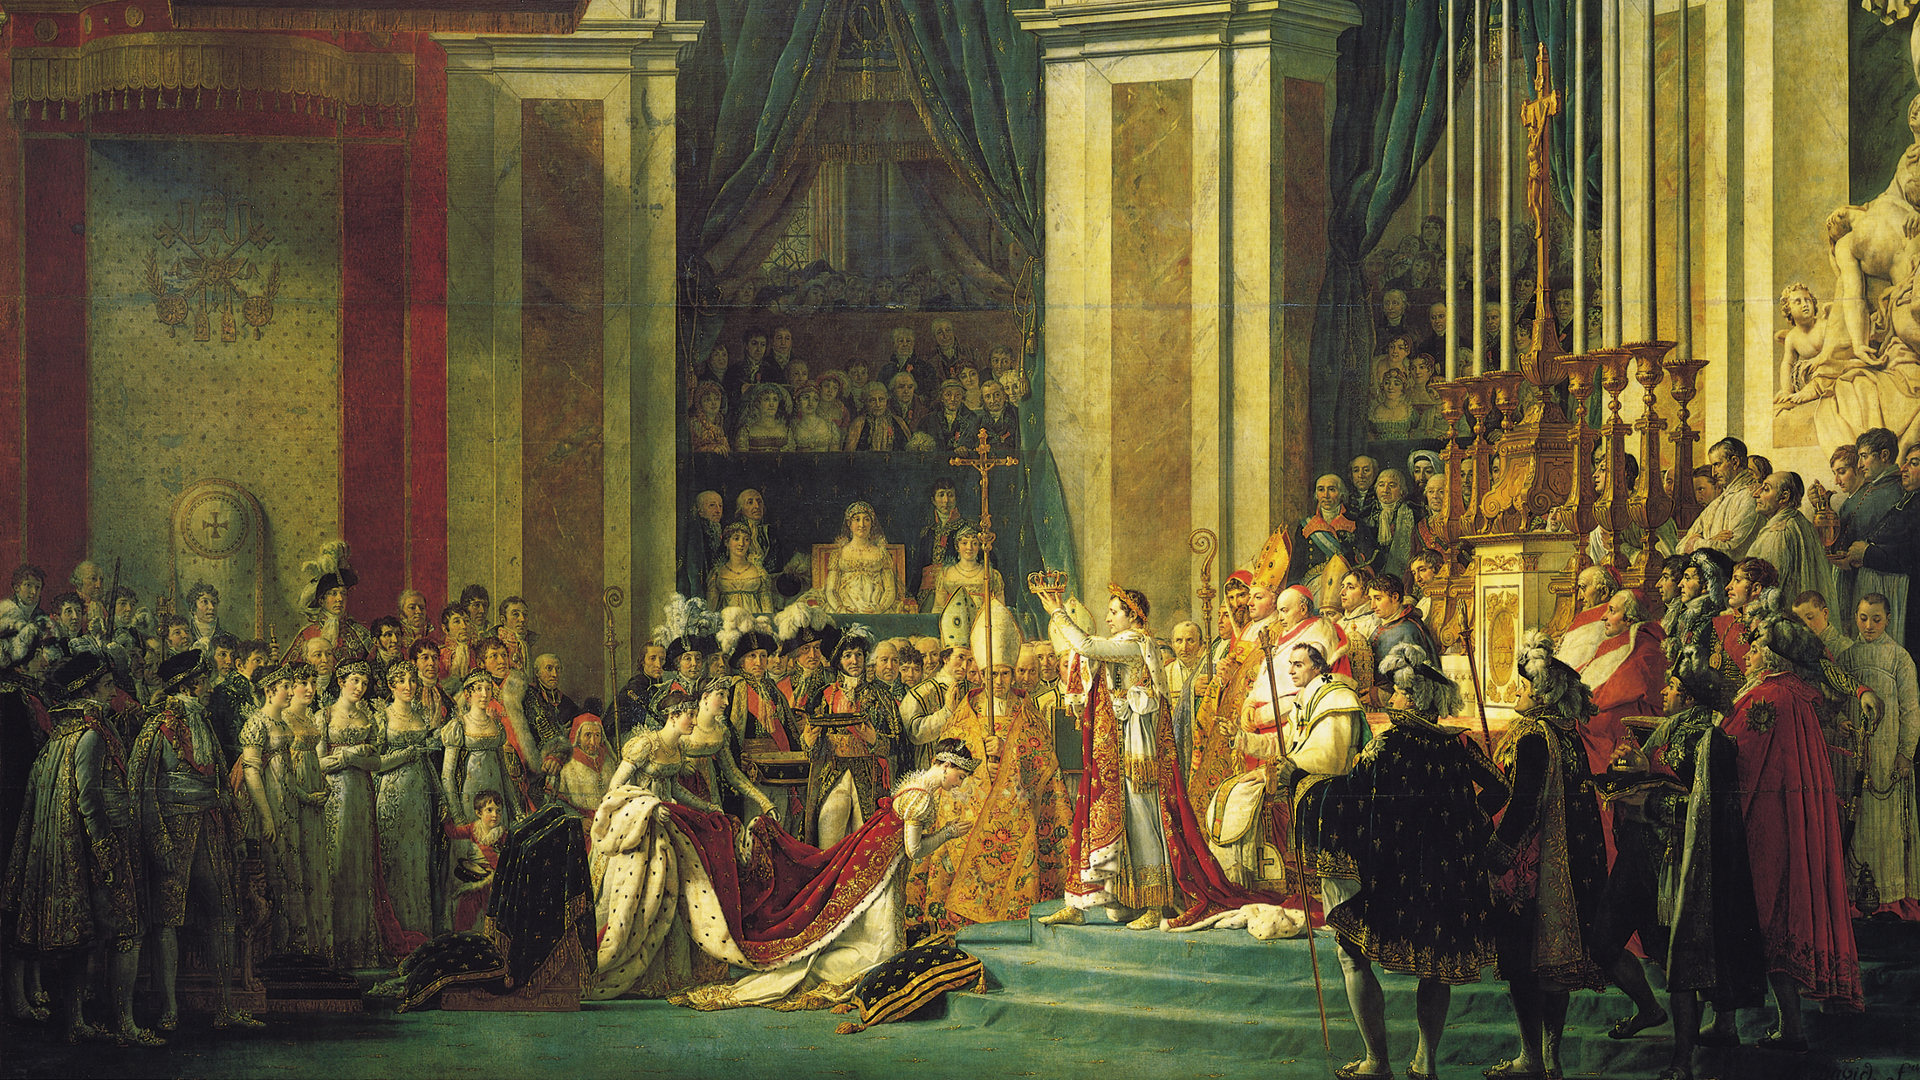 the improvements in france made by napoleon A complete history of the life and times of napoleon bonaparte from his youth and rise to power to his defeat and death page one youth napoleon in paris out of.